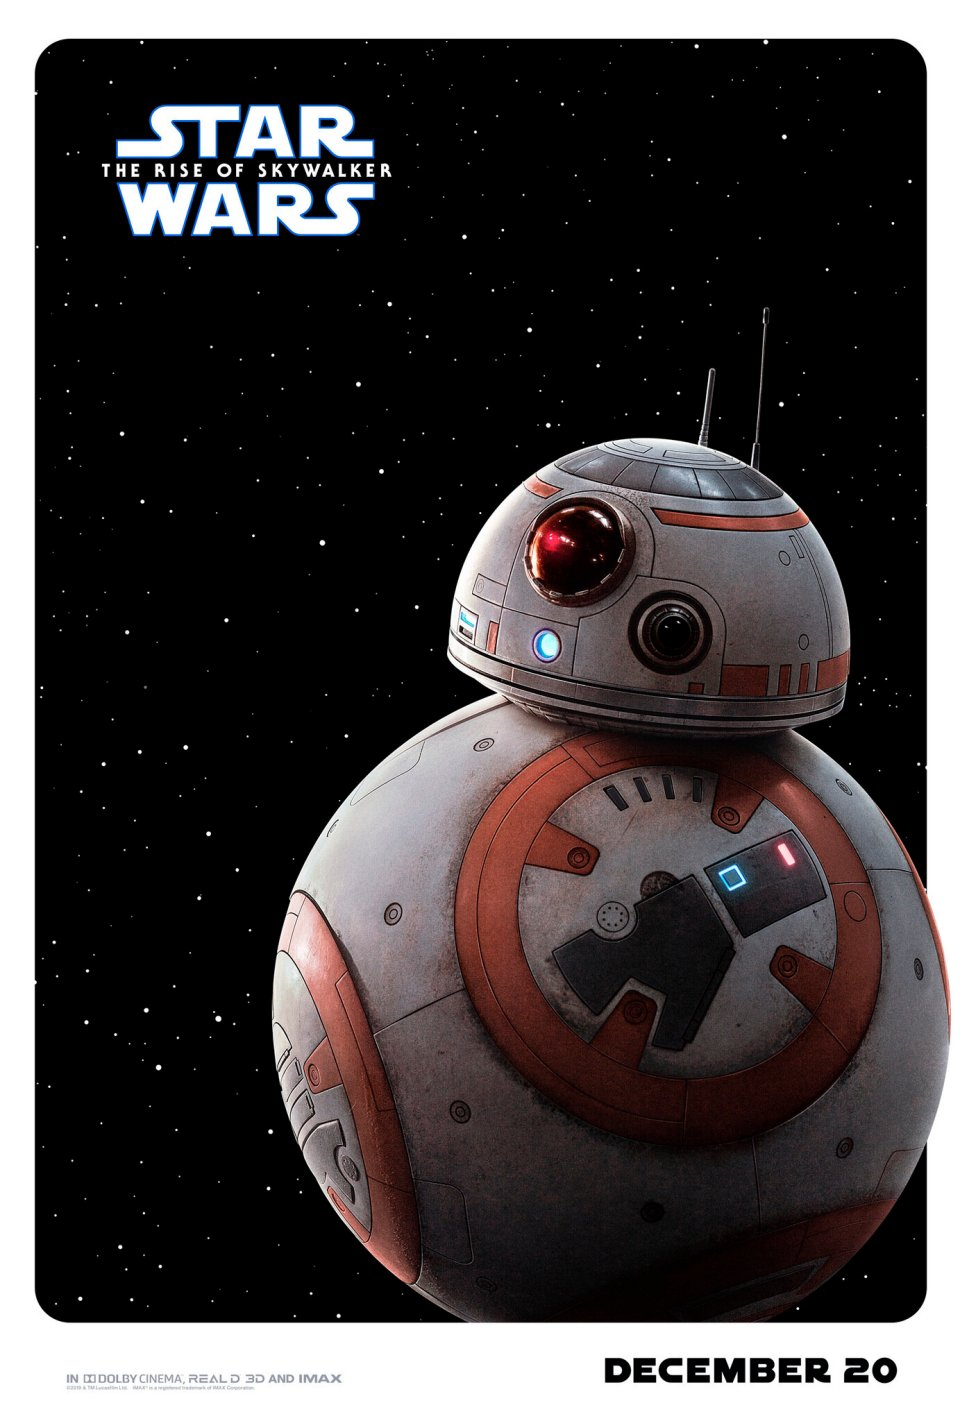 11-character-posters-released-for-star-wars-the-rise-of-skywalker7.jpg